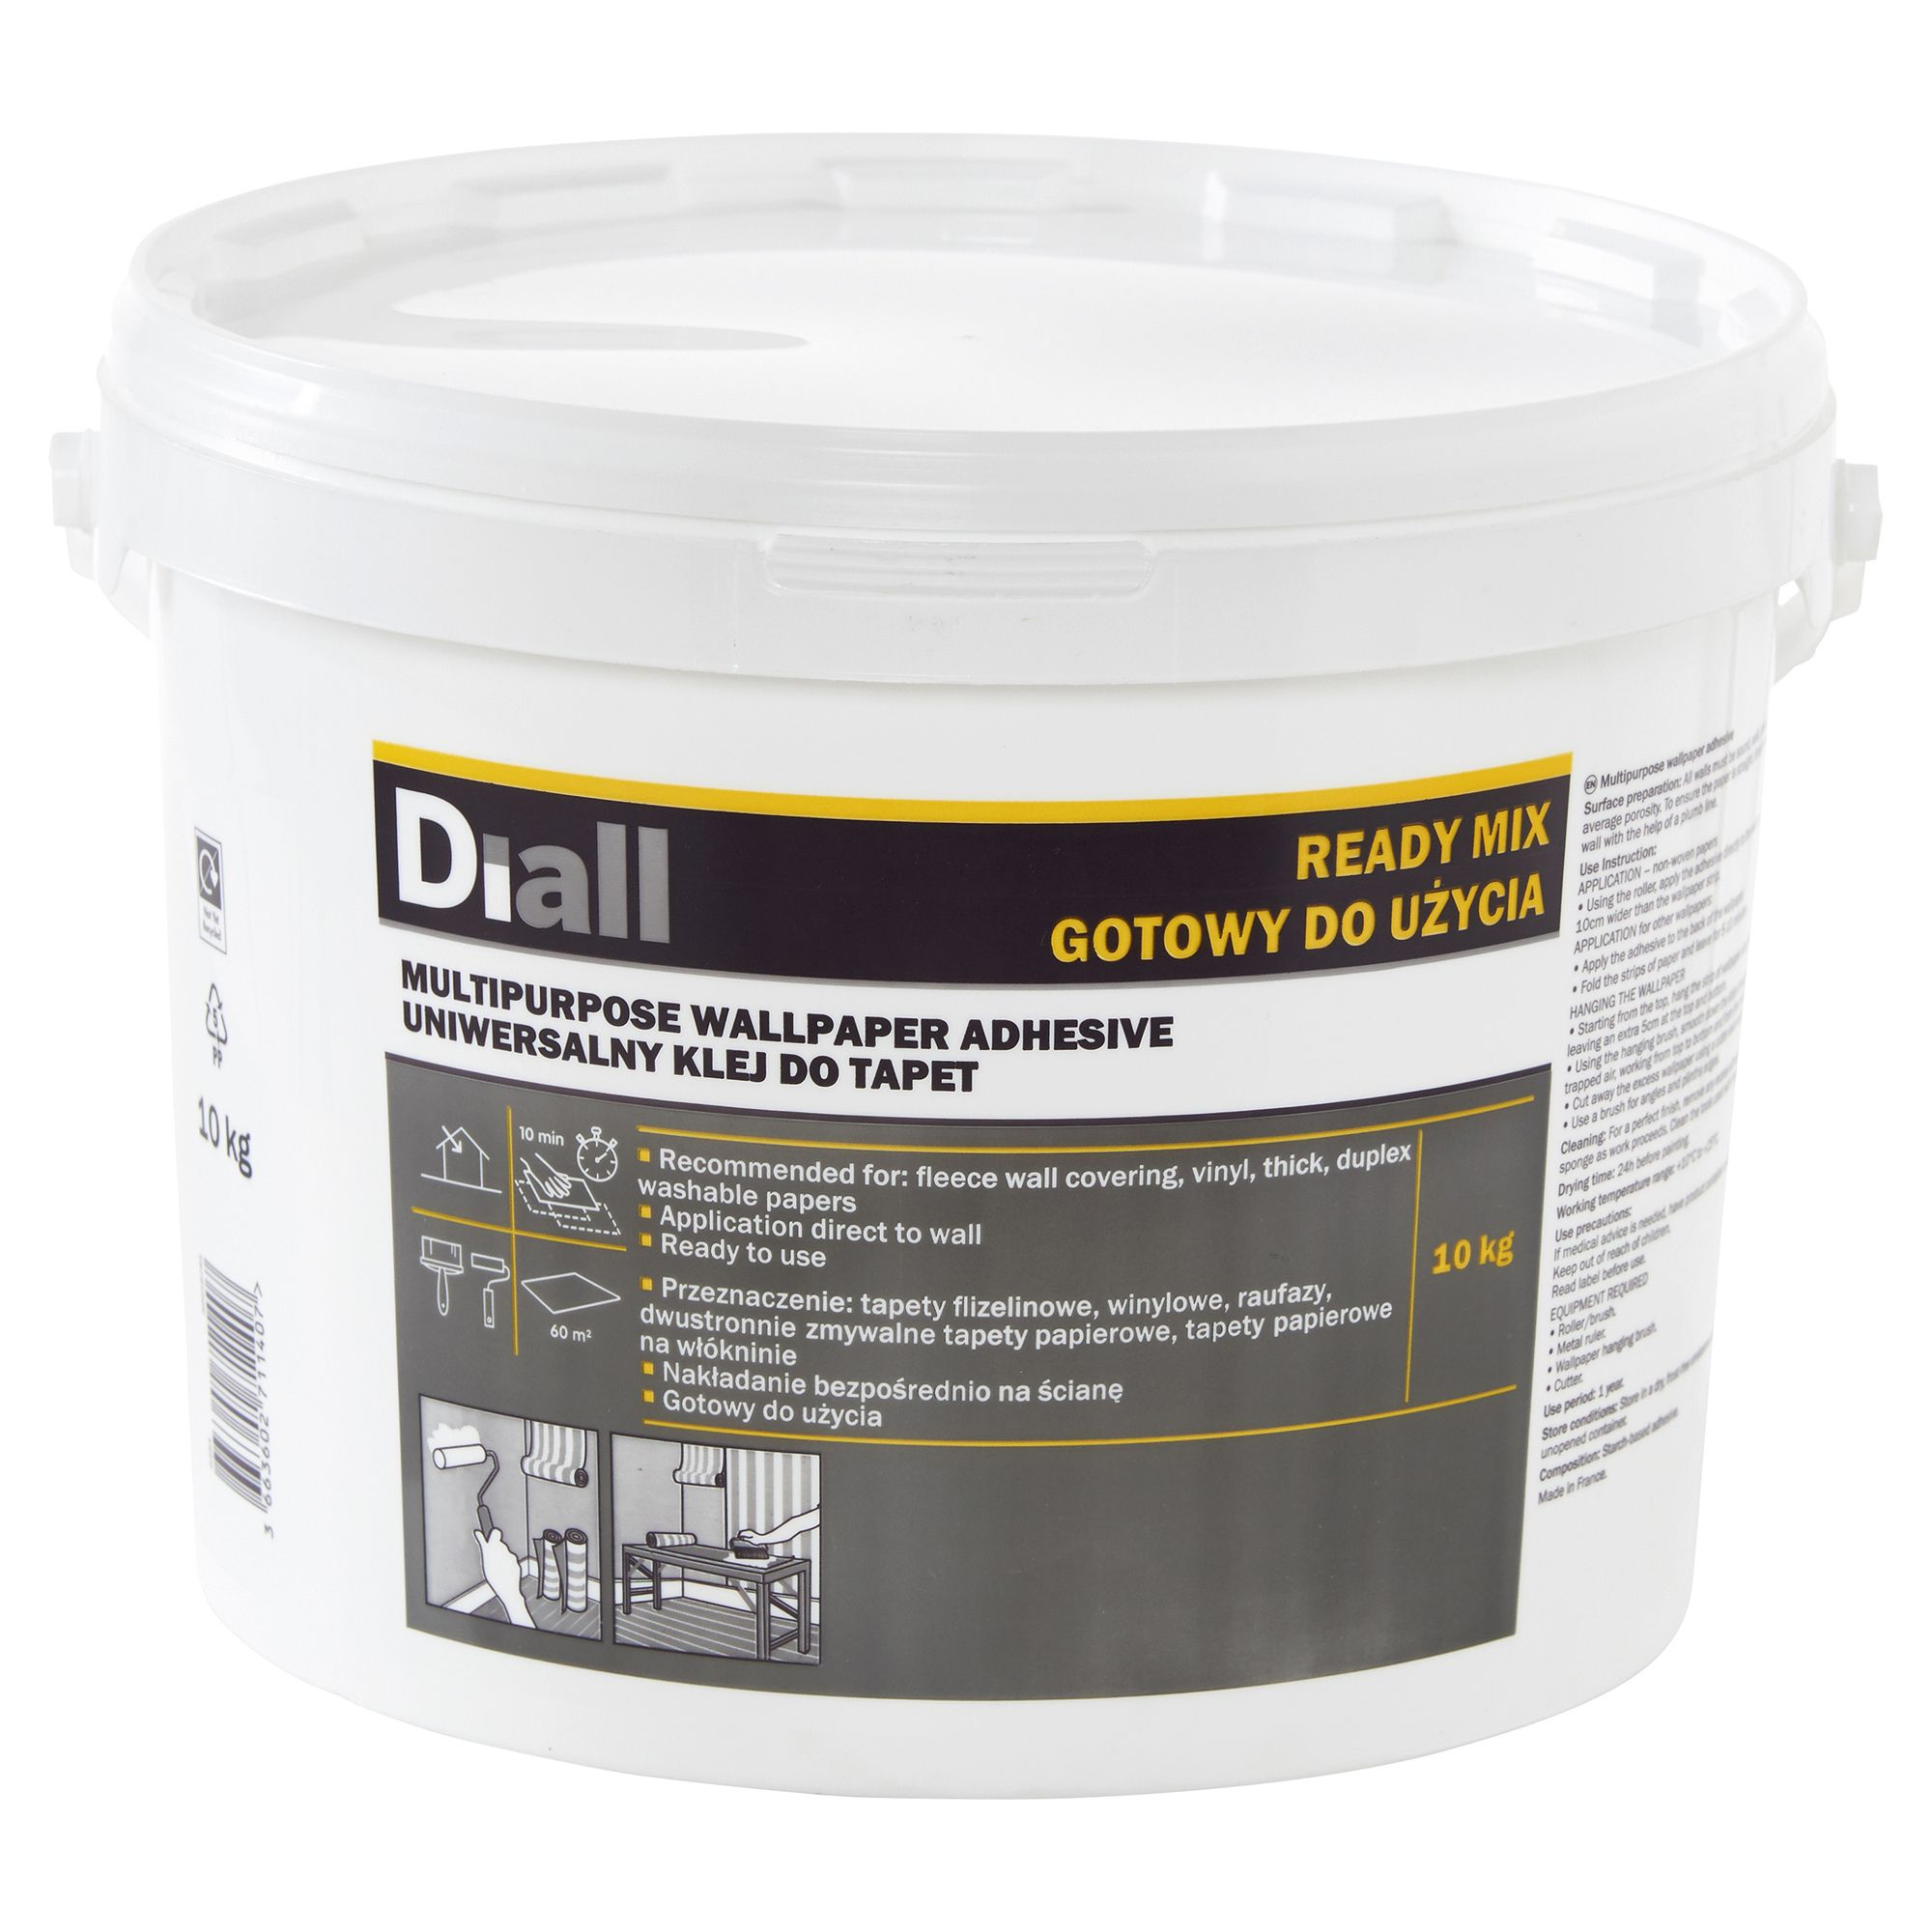 Diall Wall Paper Glue Ready To Use Wallpaper Adhesive 10 Kg Departments Diy At B Q